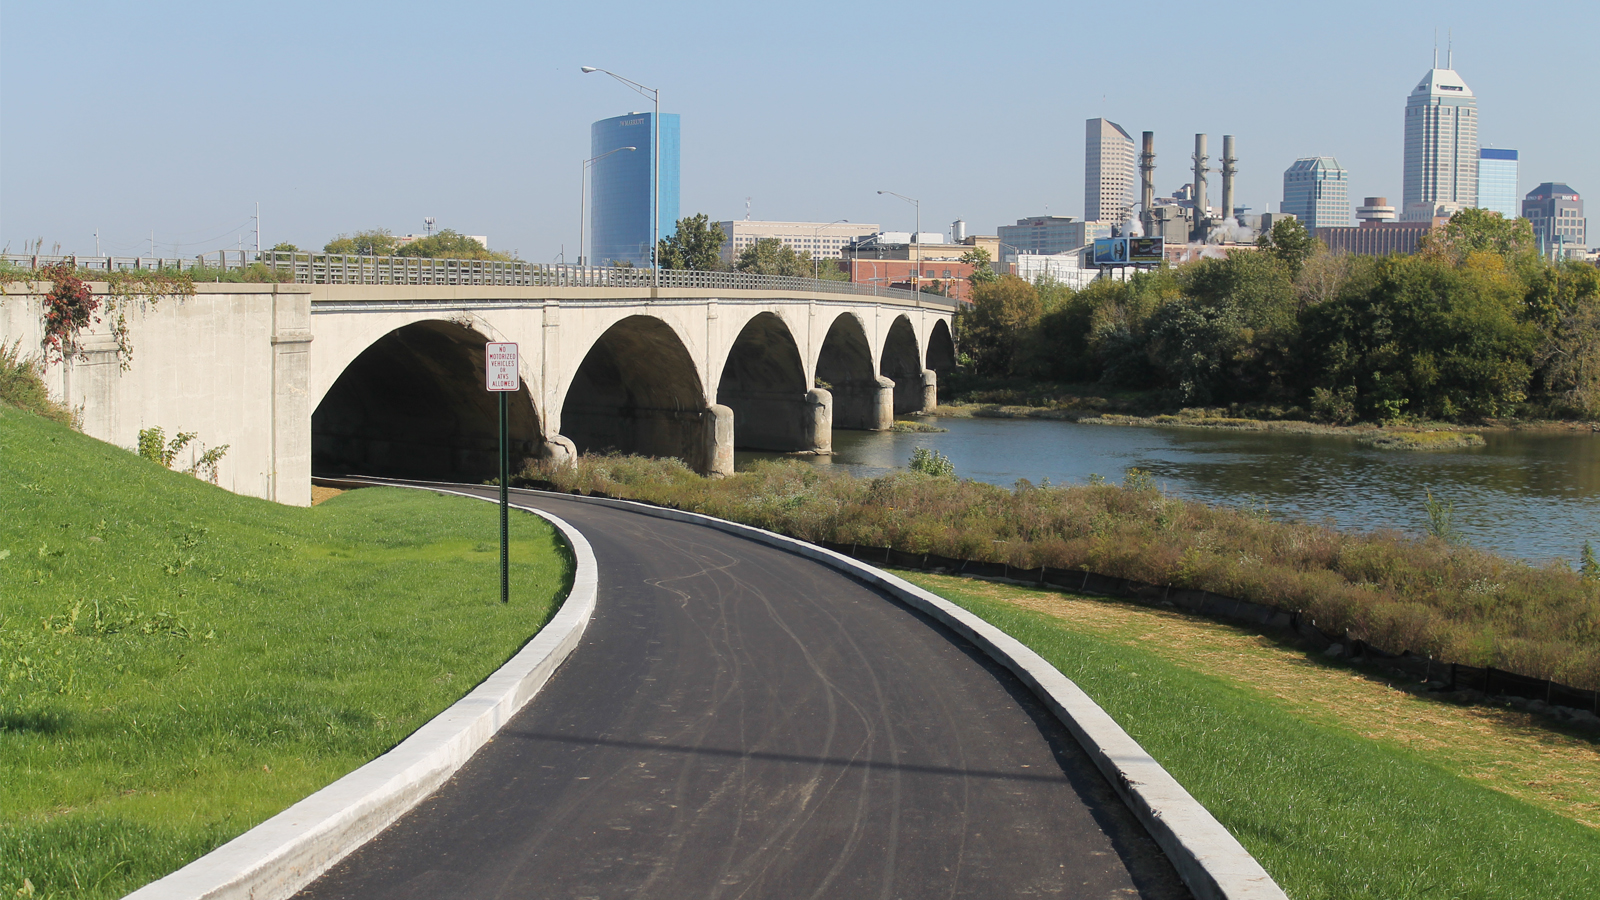 South White River Greenways